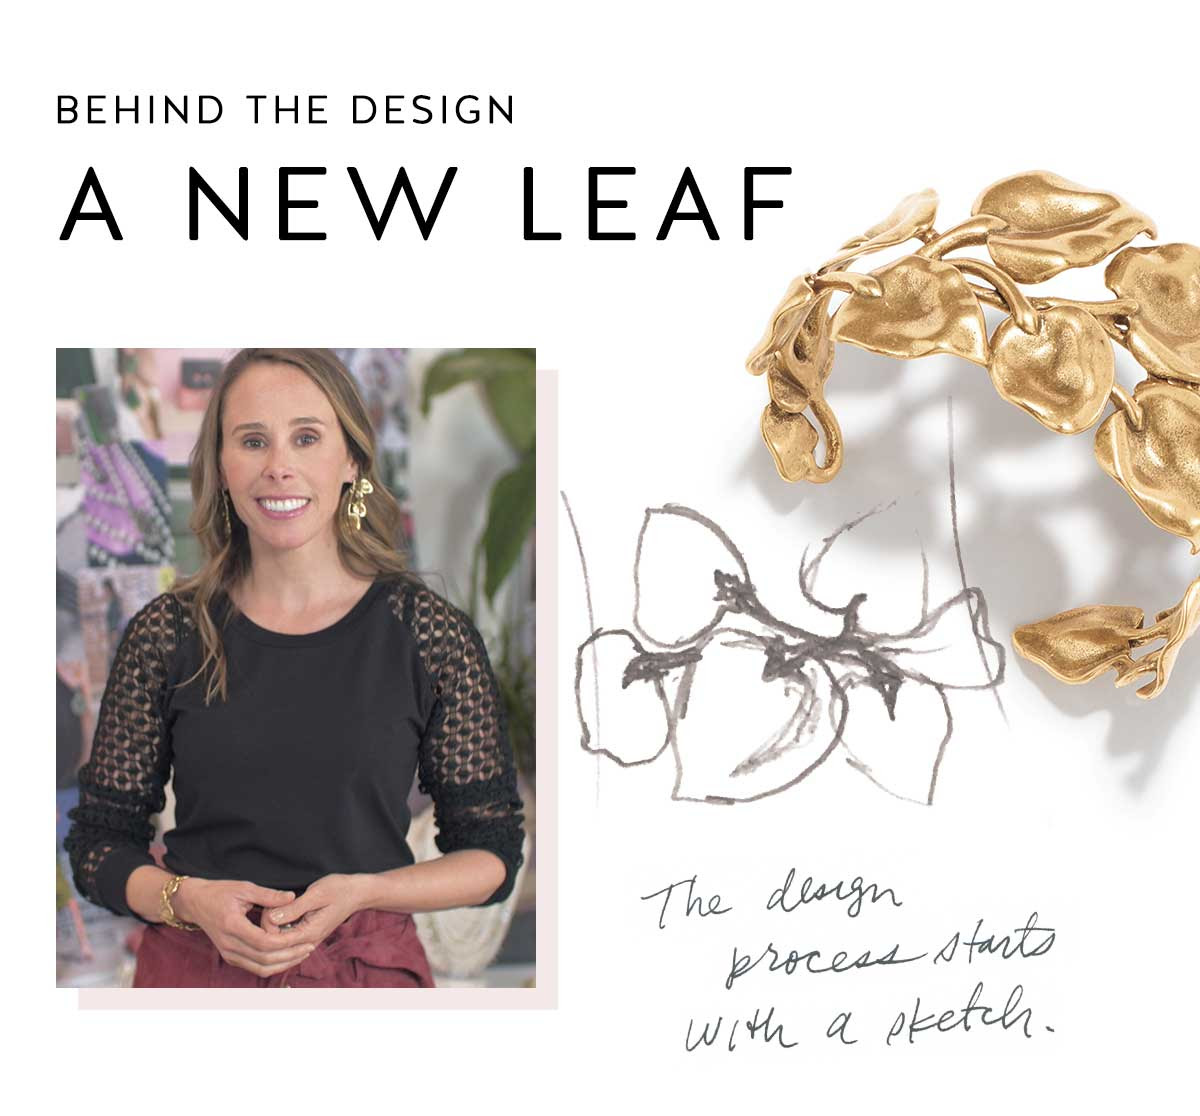 Behind the design: a new leaf